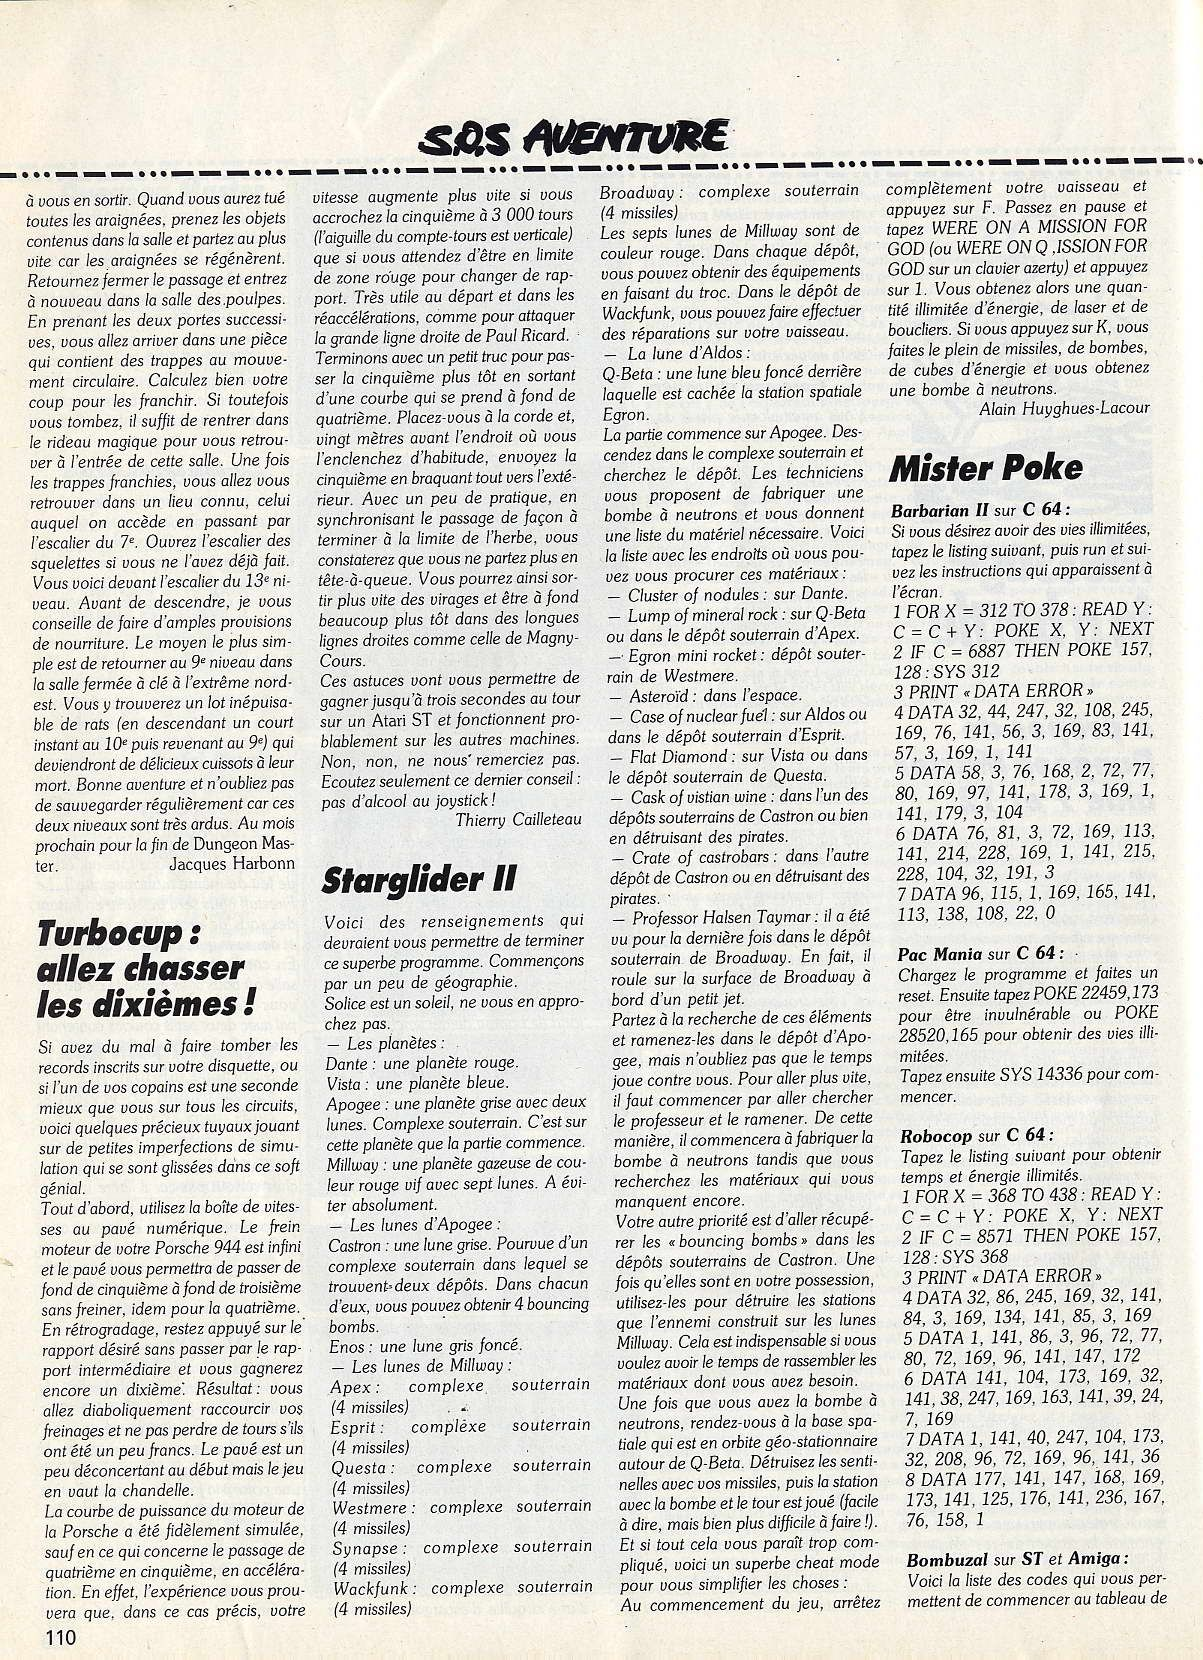 Dungeon Master Hints published in French magazine 'Tilt', Issue #66, May 1989, Page 110